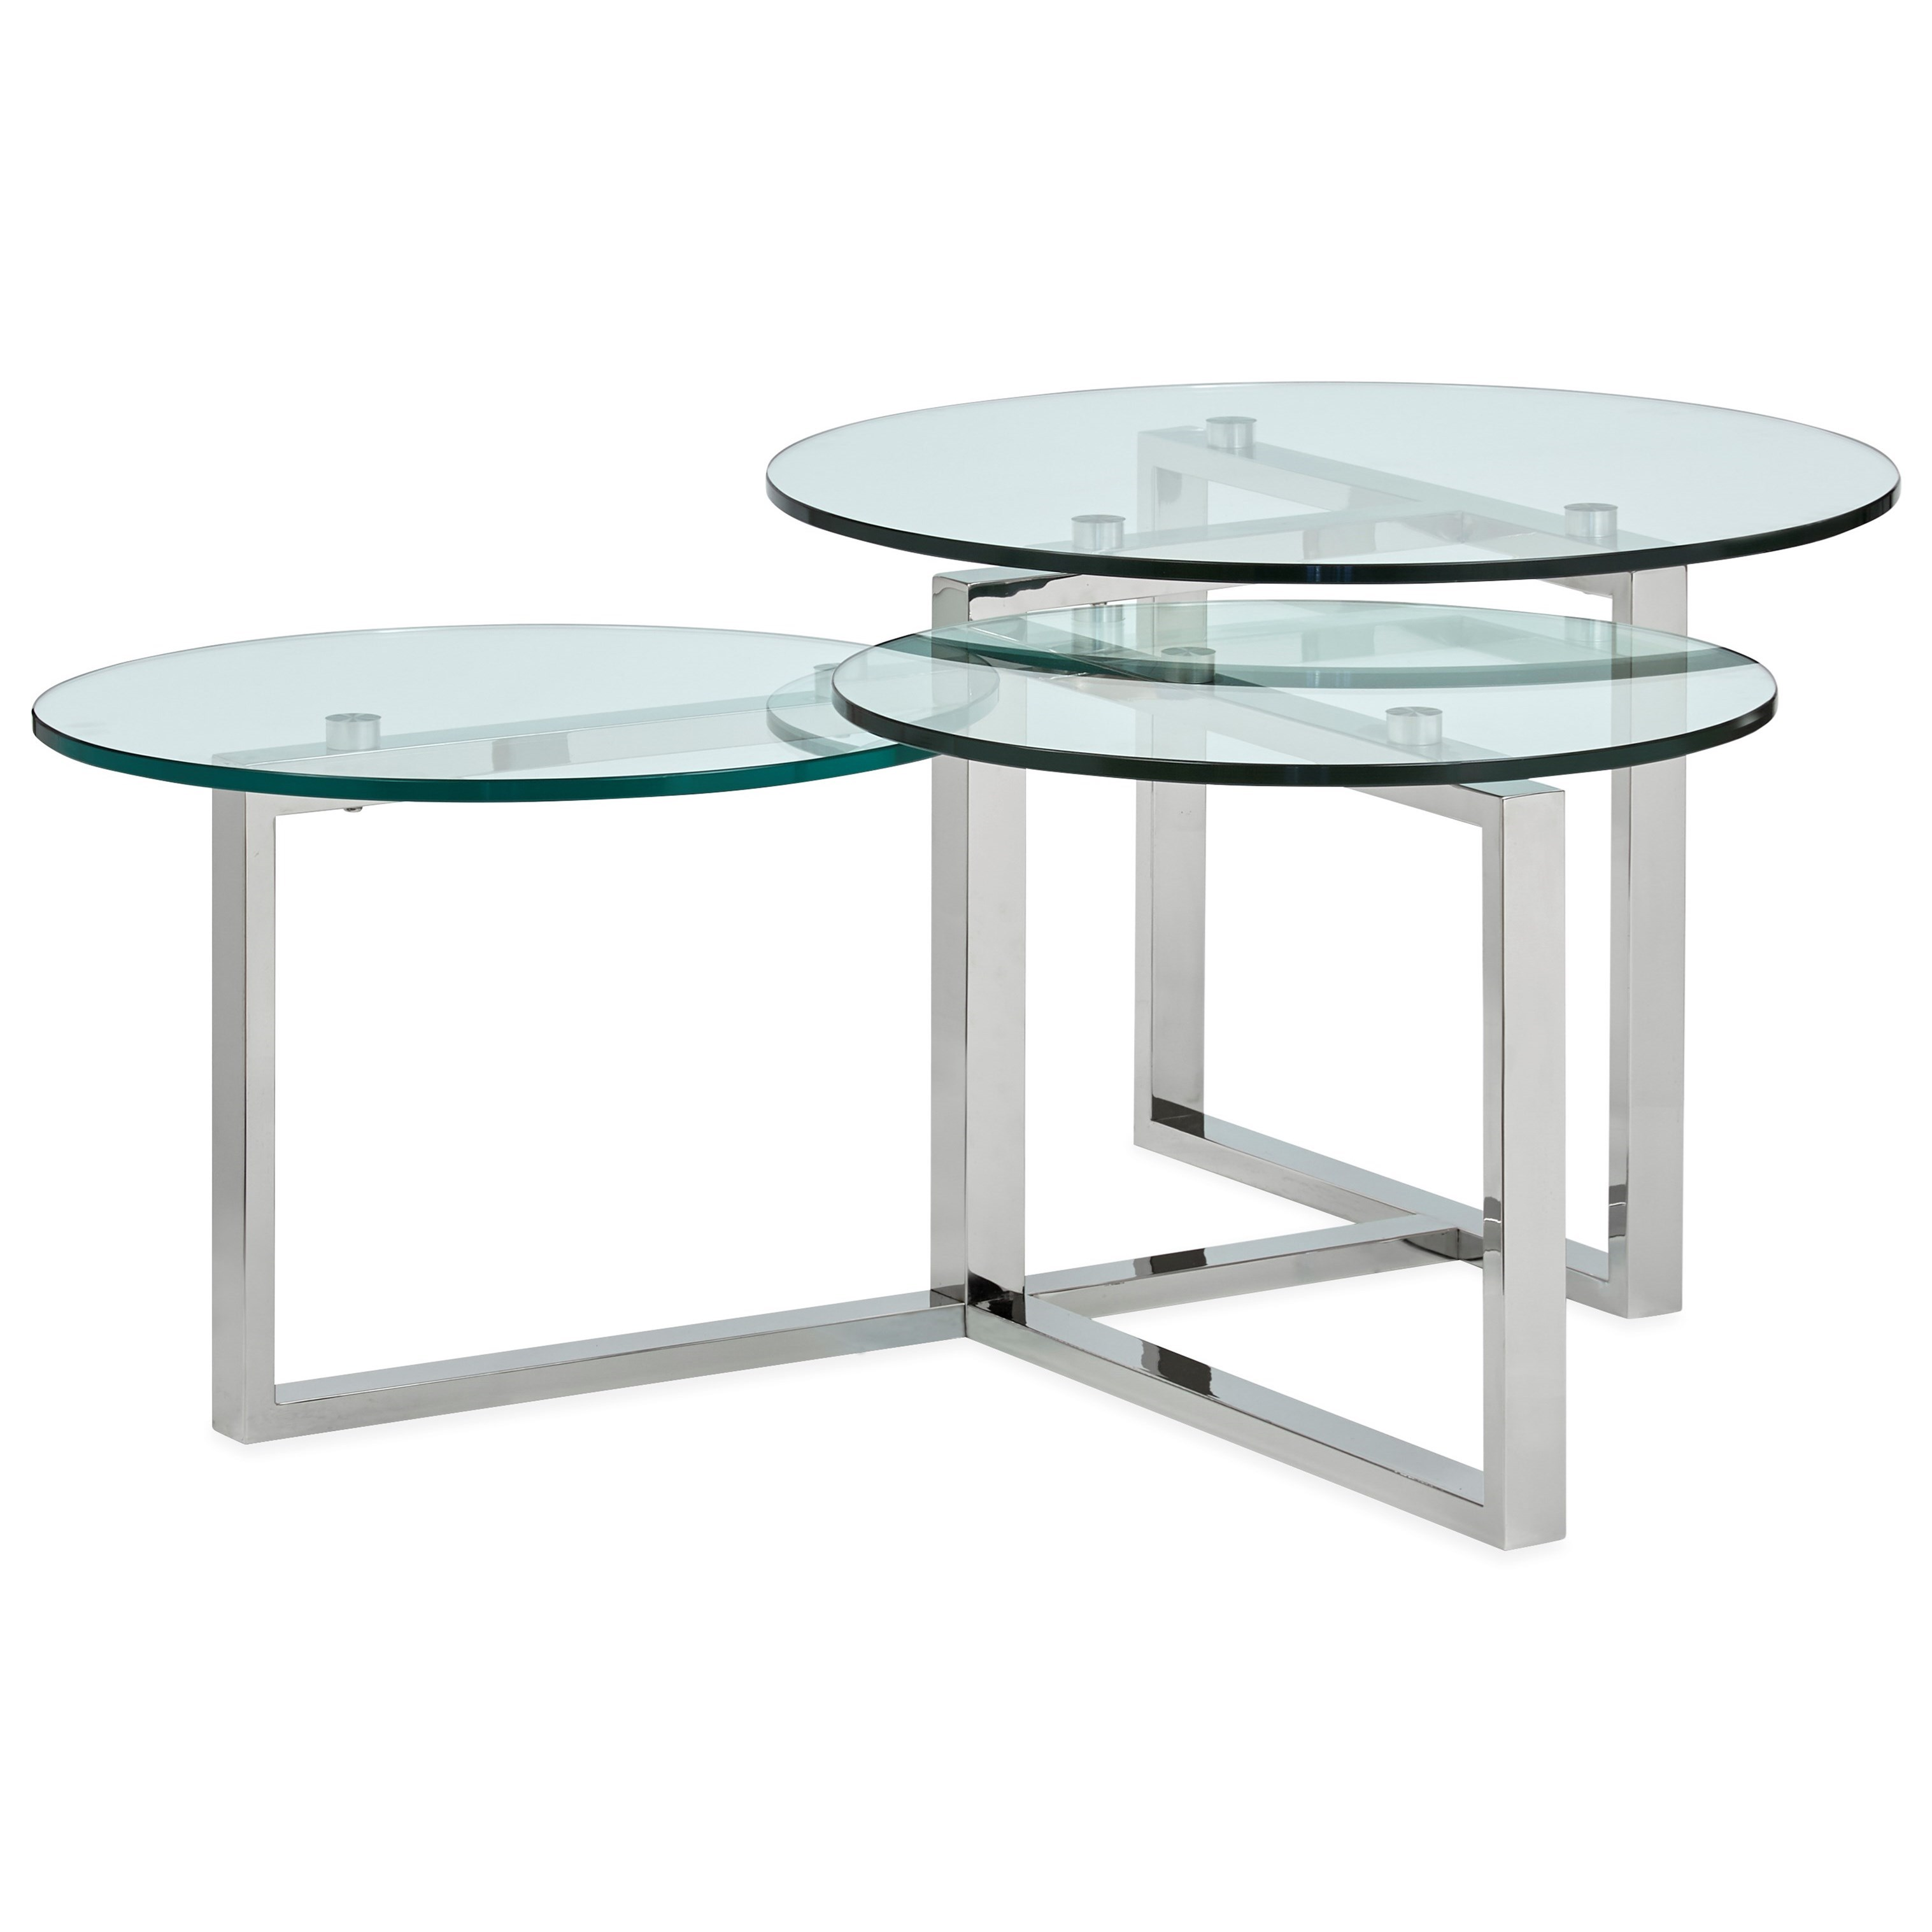 Medlock T5056 Shaped Cocktail Table by Magnussen Home at Darvin Furniture